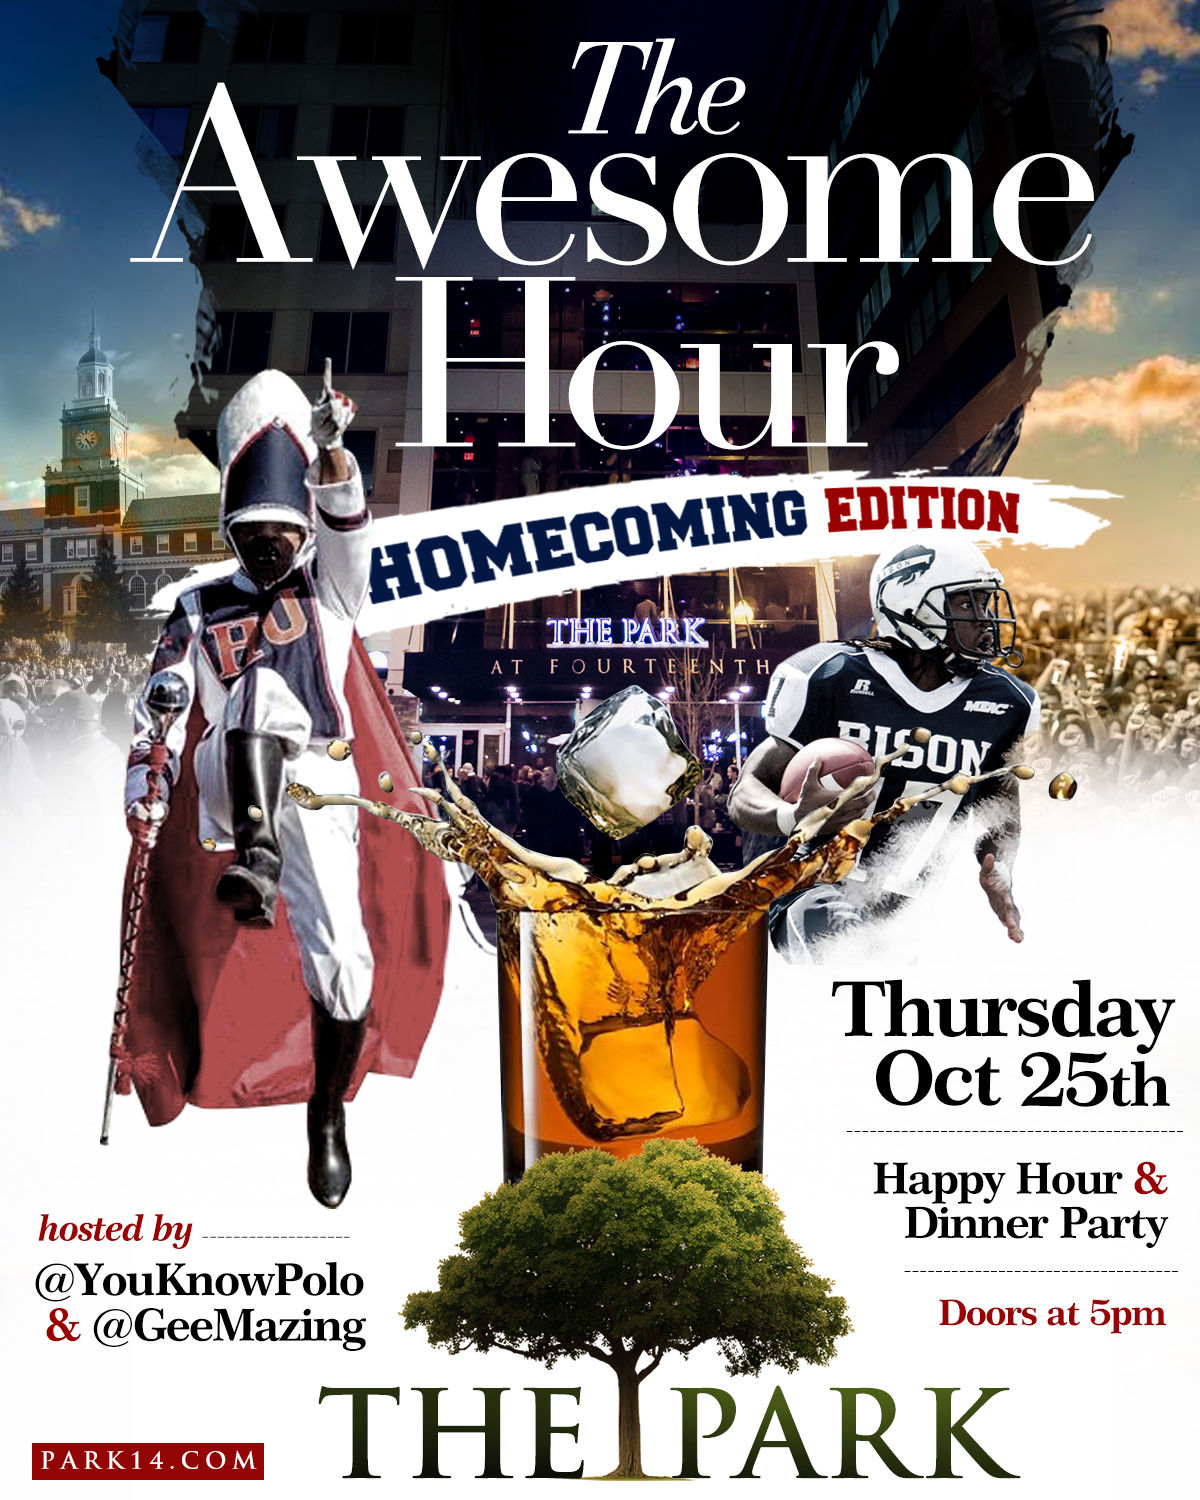 The Awesome Hour Flyer.jpg